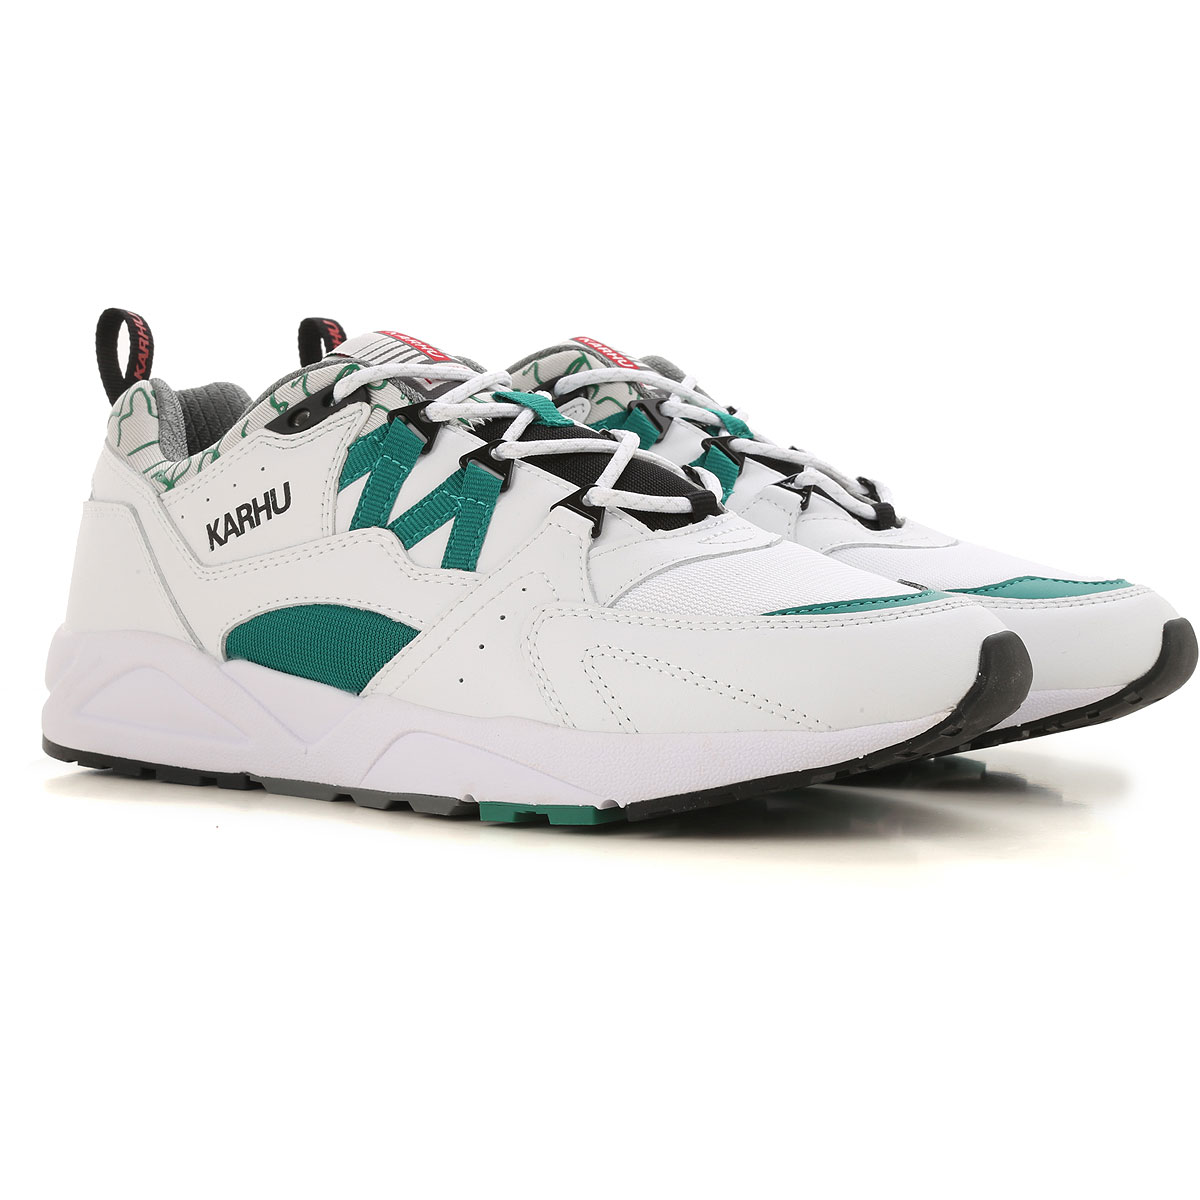 Image of Karhu Sneakers for Men, White, Leather, 2017, US 7.5 - UK 6.5 - EU 40 US 8.5 - UK 7.5 - EU 42 US 10 - UK 9 - EU 44 US 11 - UK 10 - EU 45